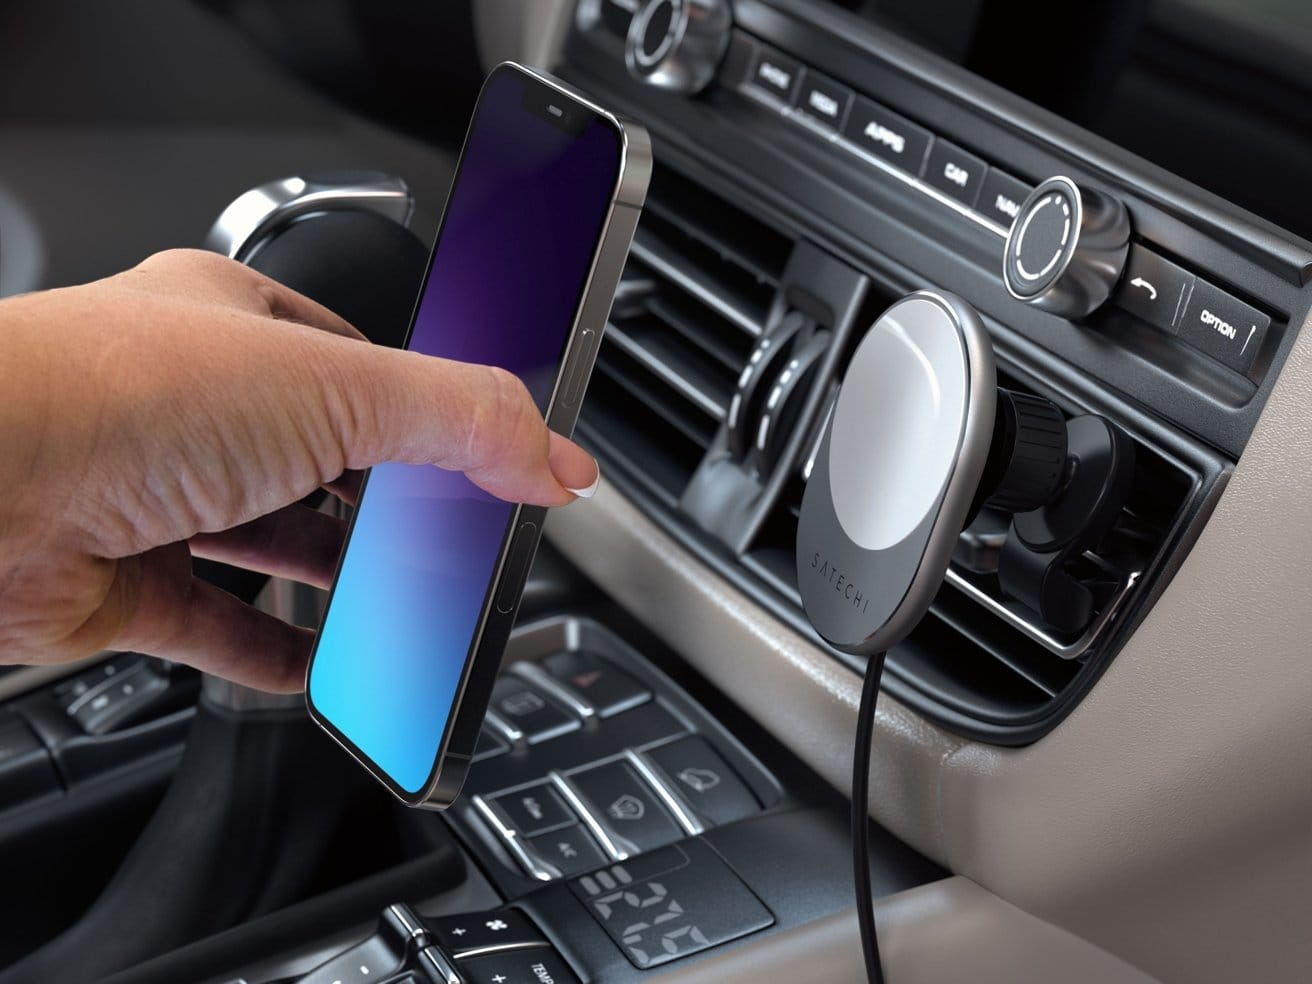 Charge up your iPhone 12 or 13 while you navigate with it in the car.